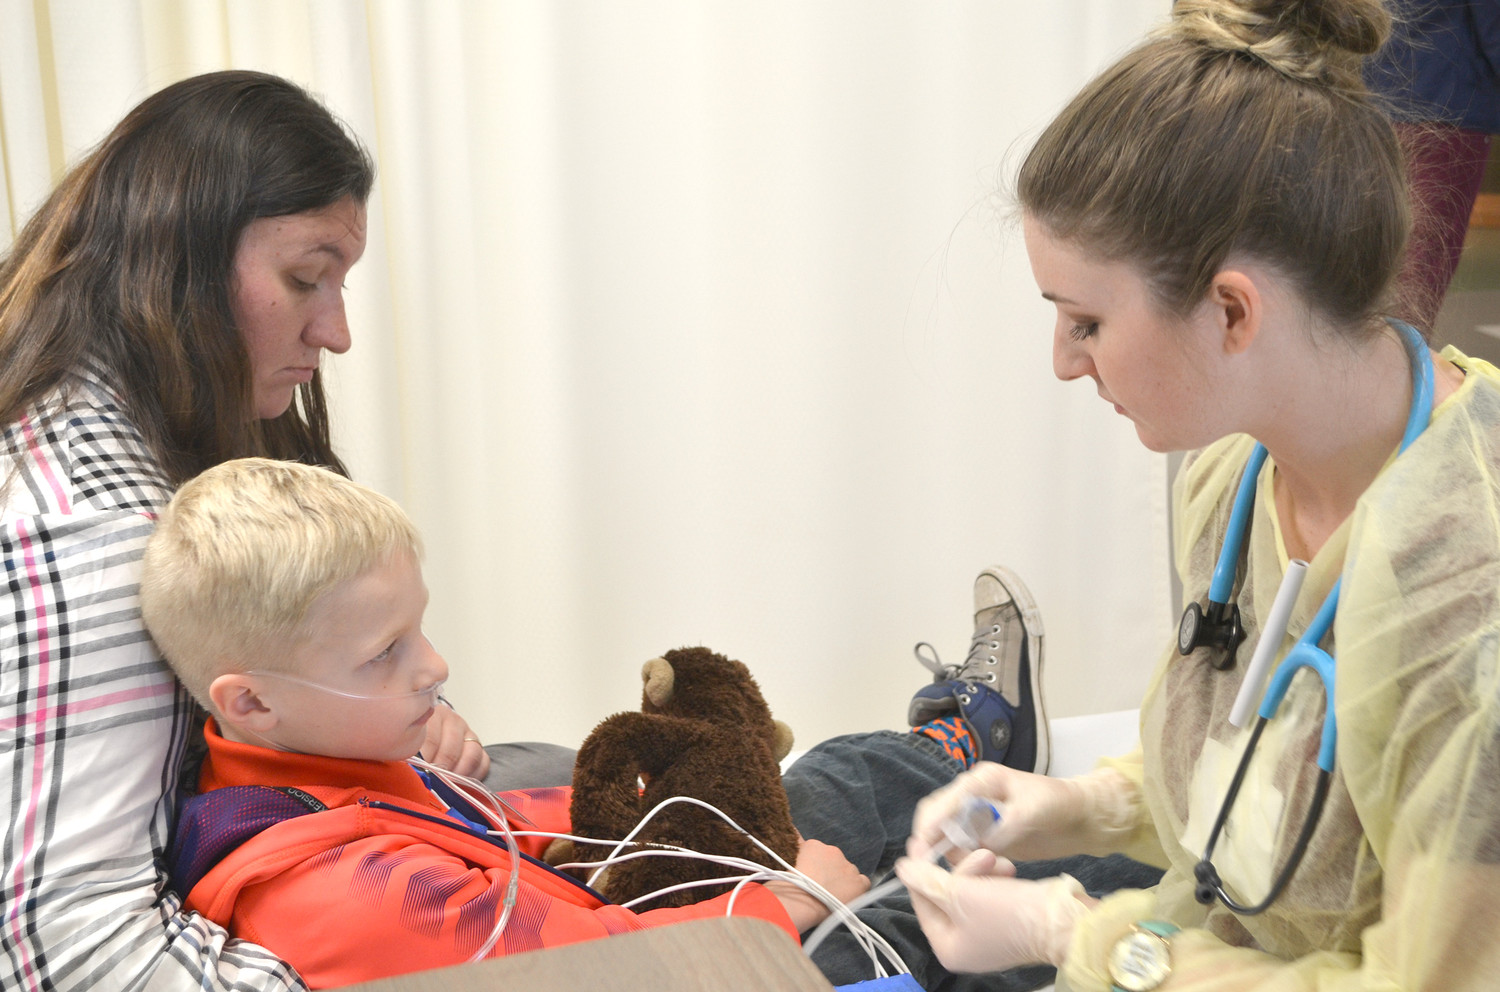 SIX-YEAR-OLD Elijah Bean is observed by RN student Bailey Davis during the mass casualty drill held Wednesday at Lee University's School of Nursing. Holding Elijah is his mother, Sherry Bean.